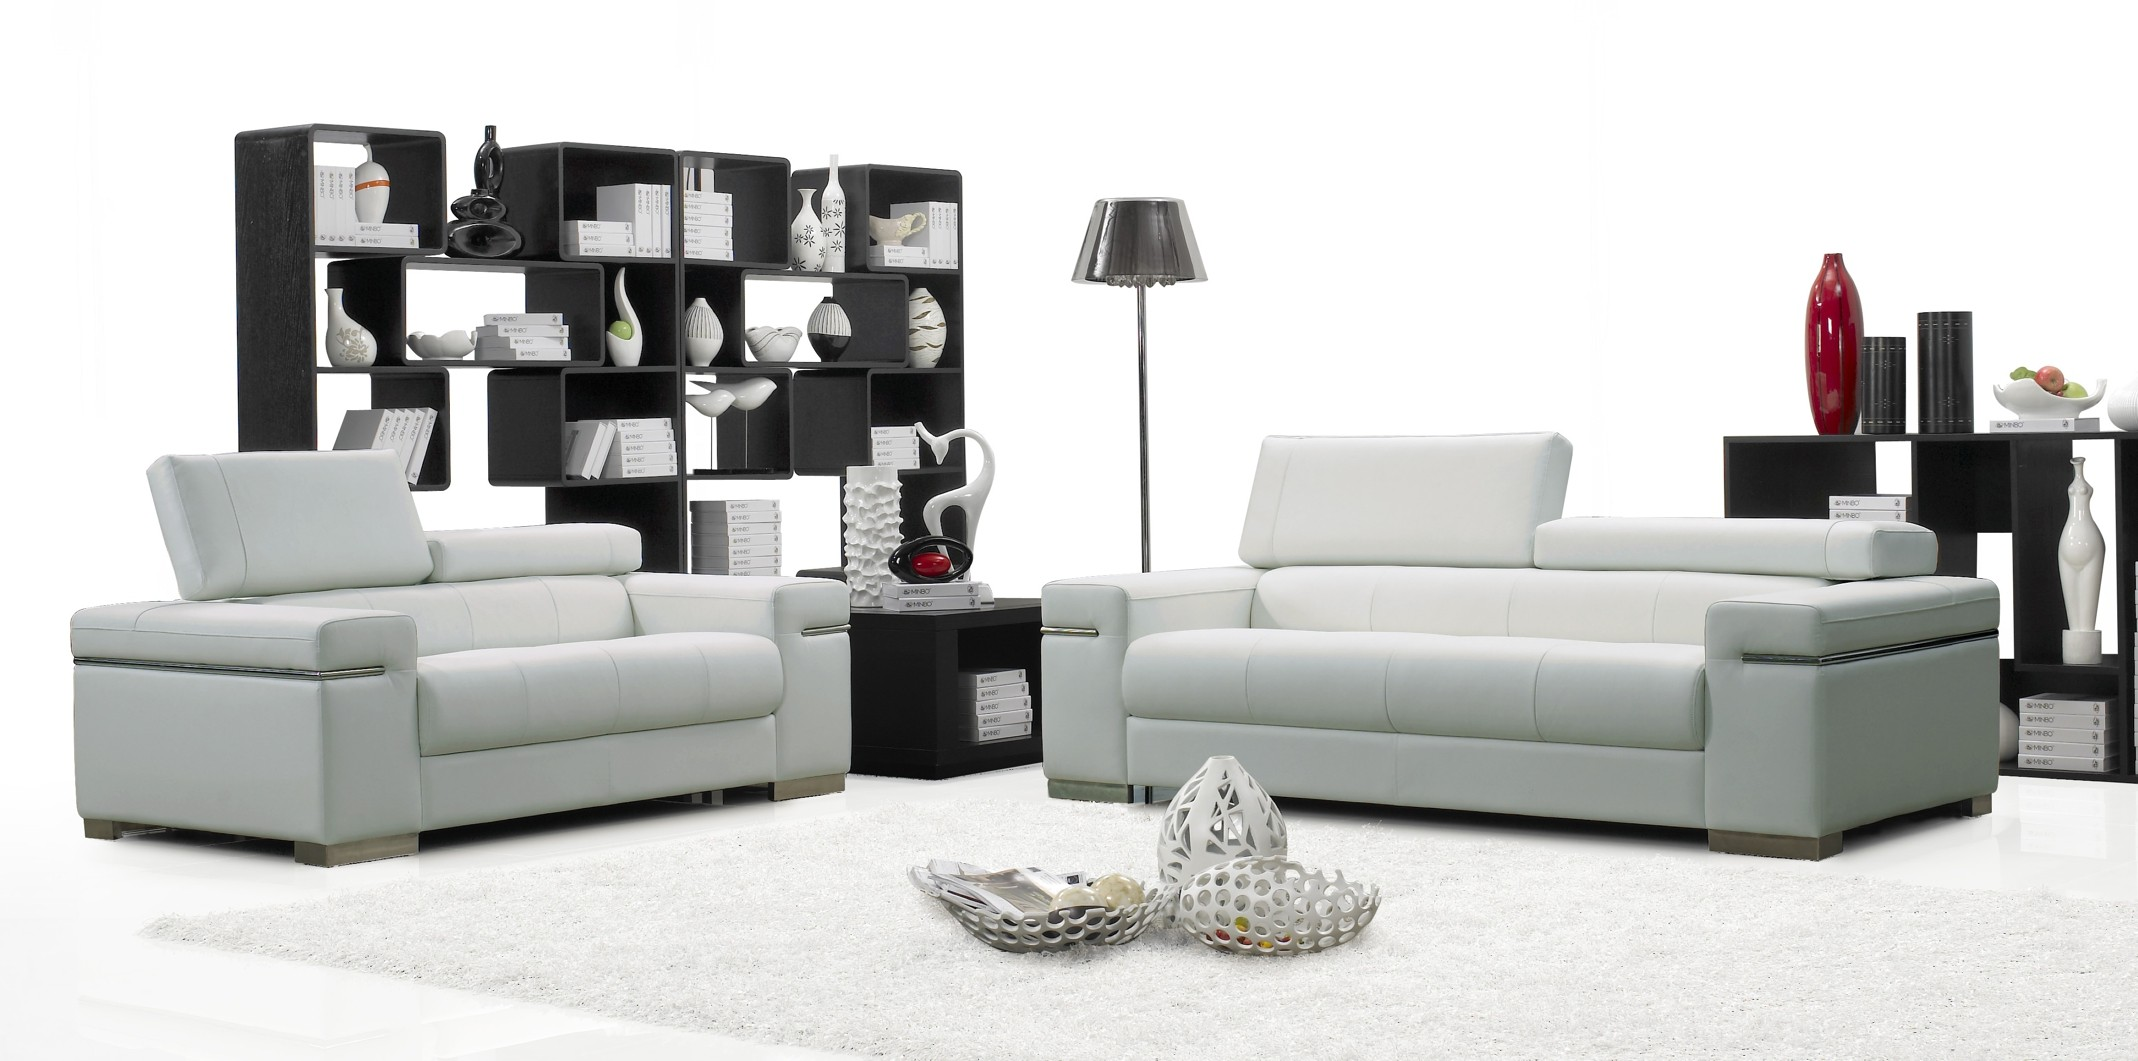 True modern furniture online homesfeed for What is contemporary furniture style